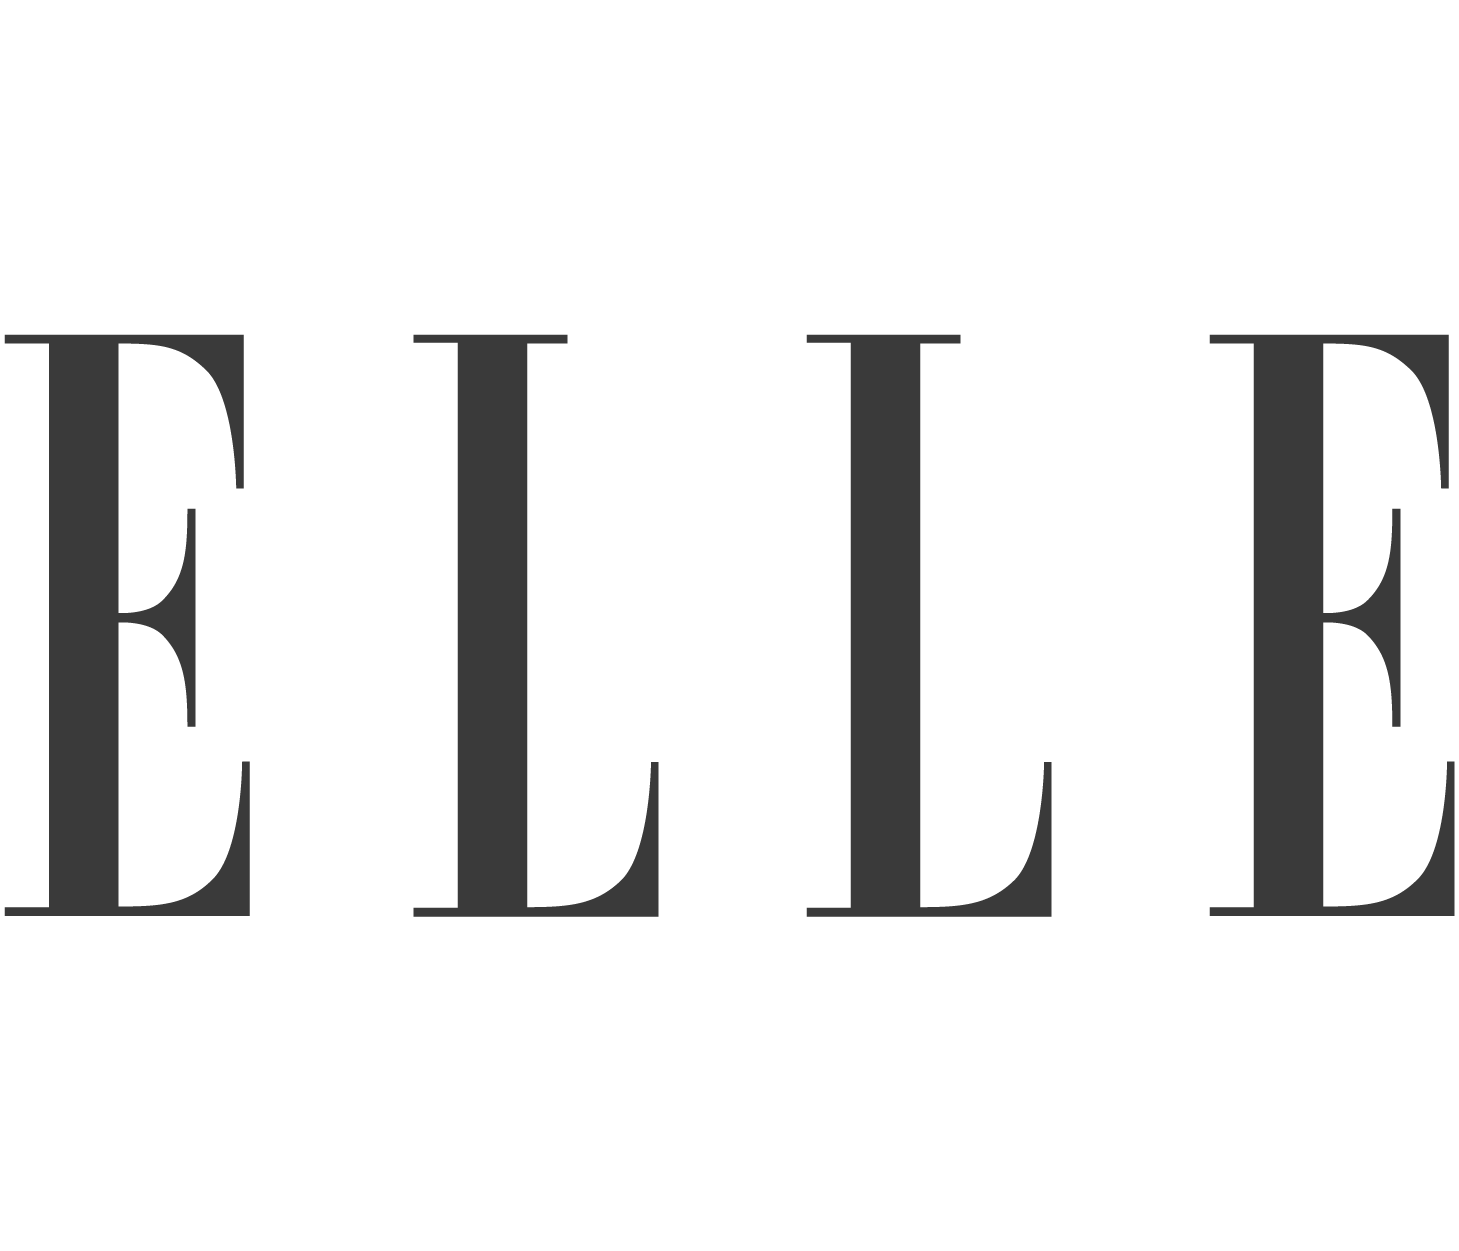 Purearth - Elle 2016 Beauty Award Winner